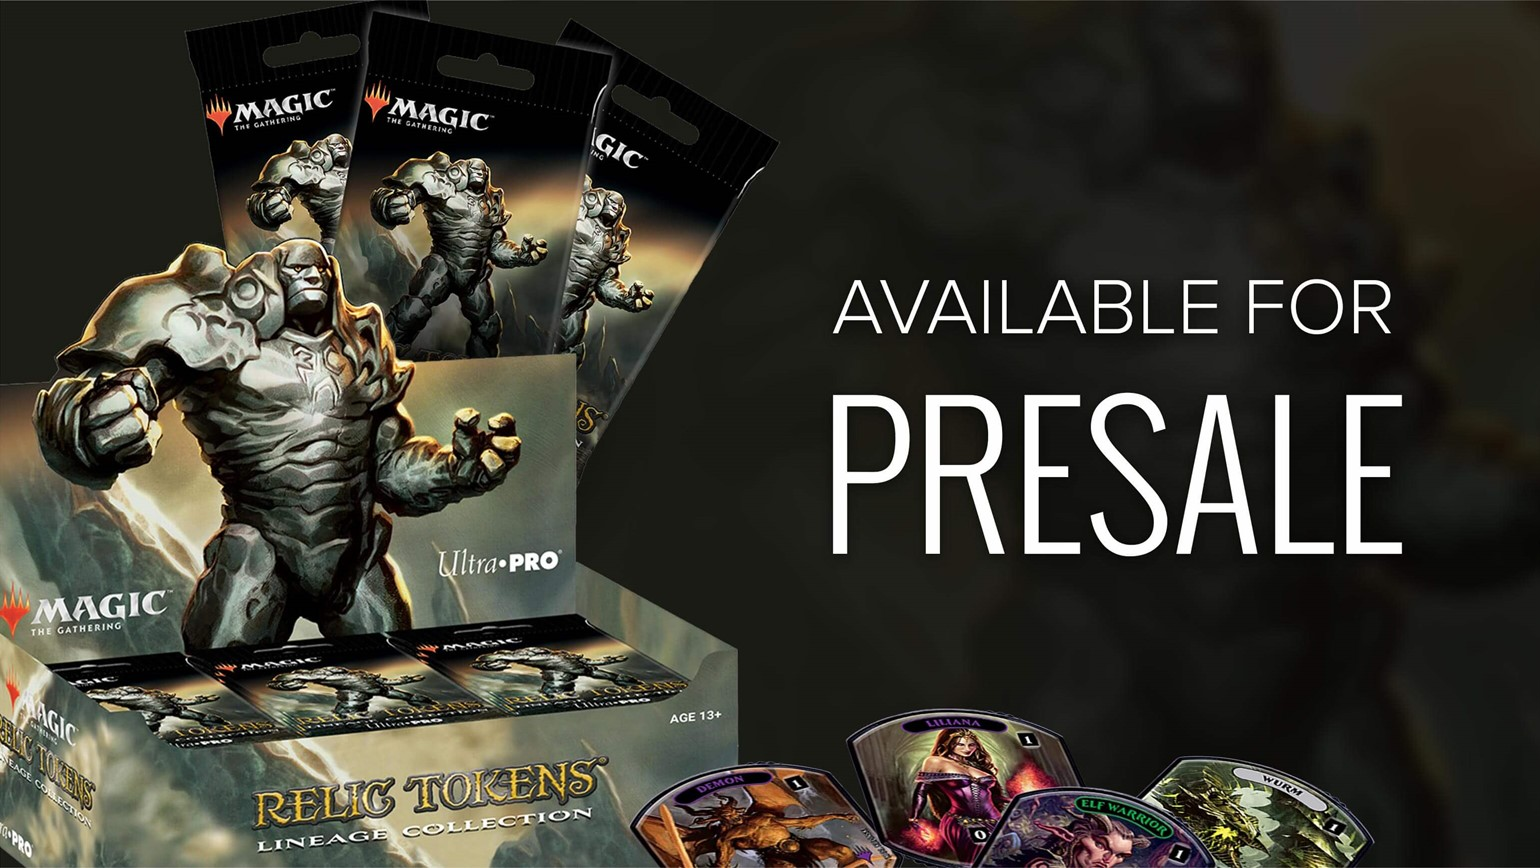 Ultra PRO Relic Tokens: Lineage Collection for Magic